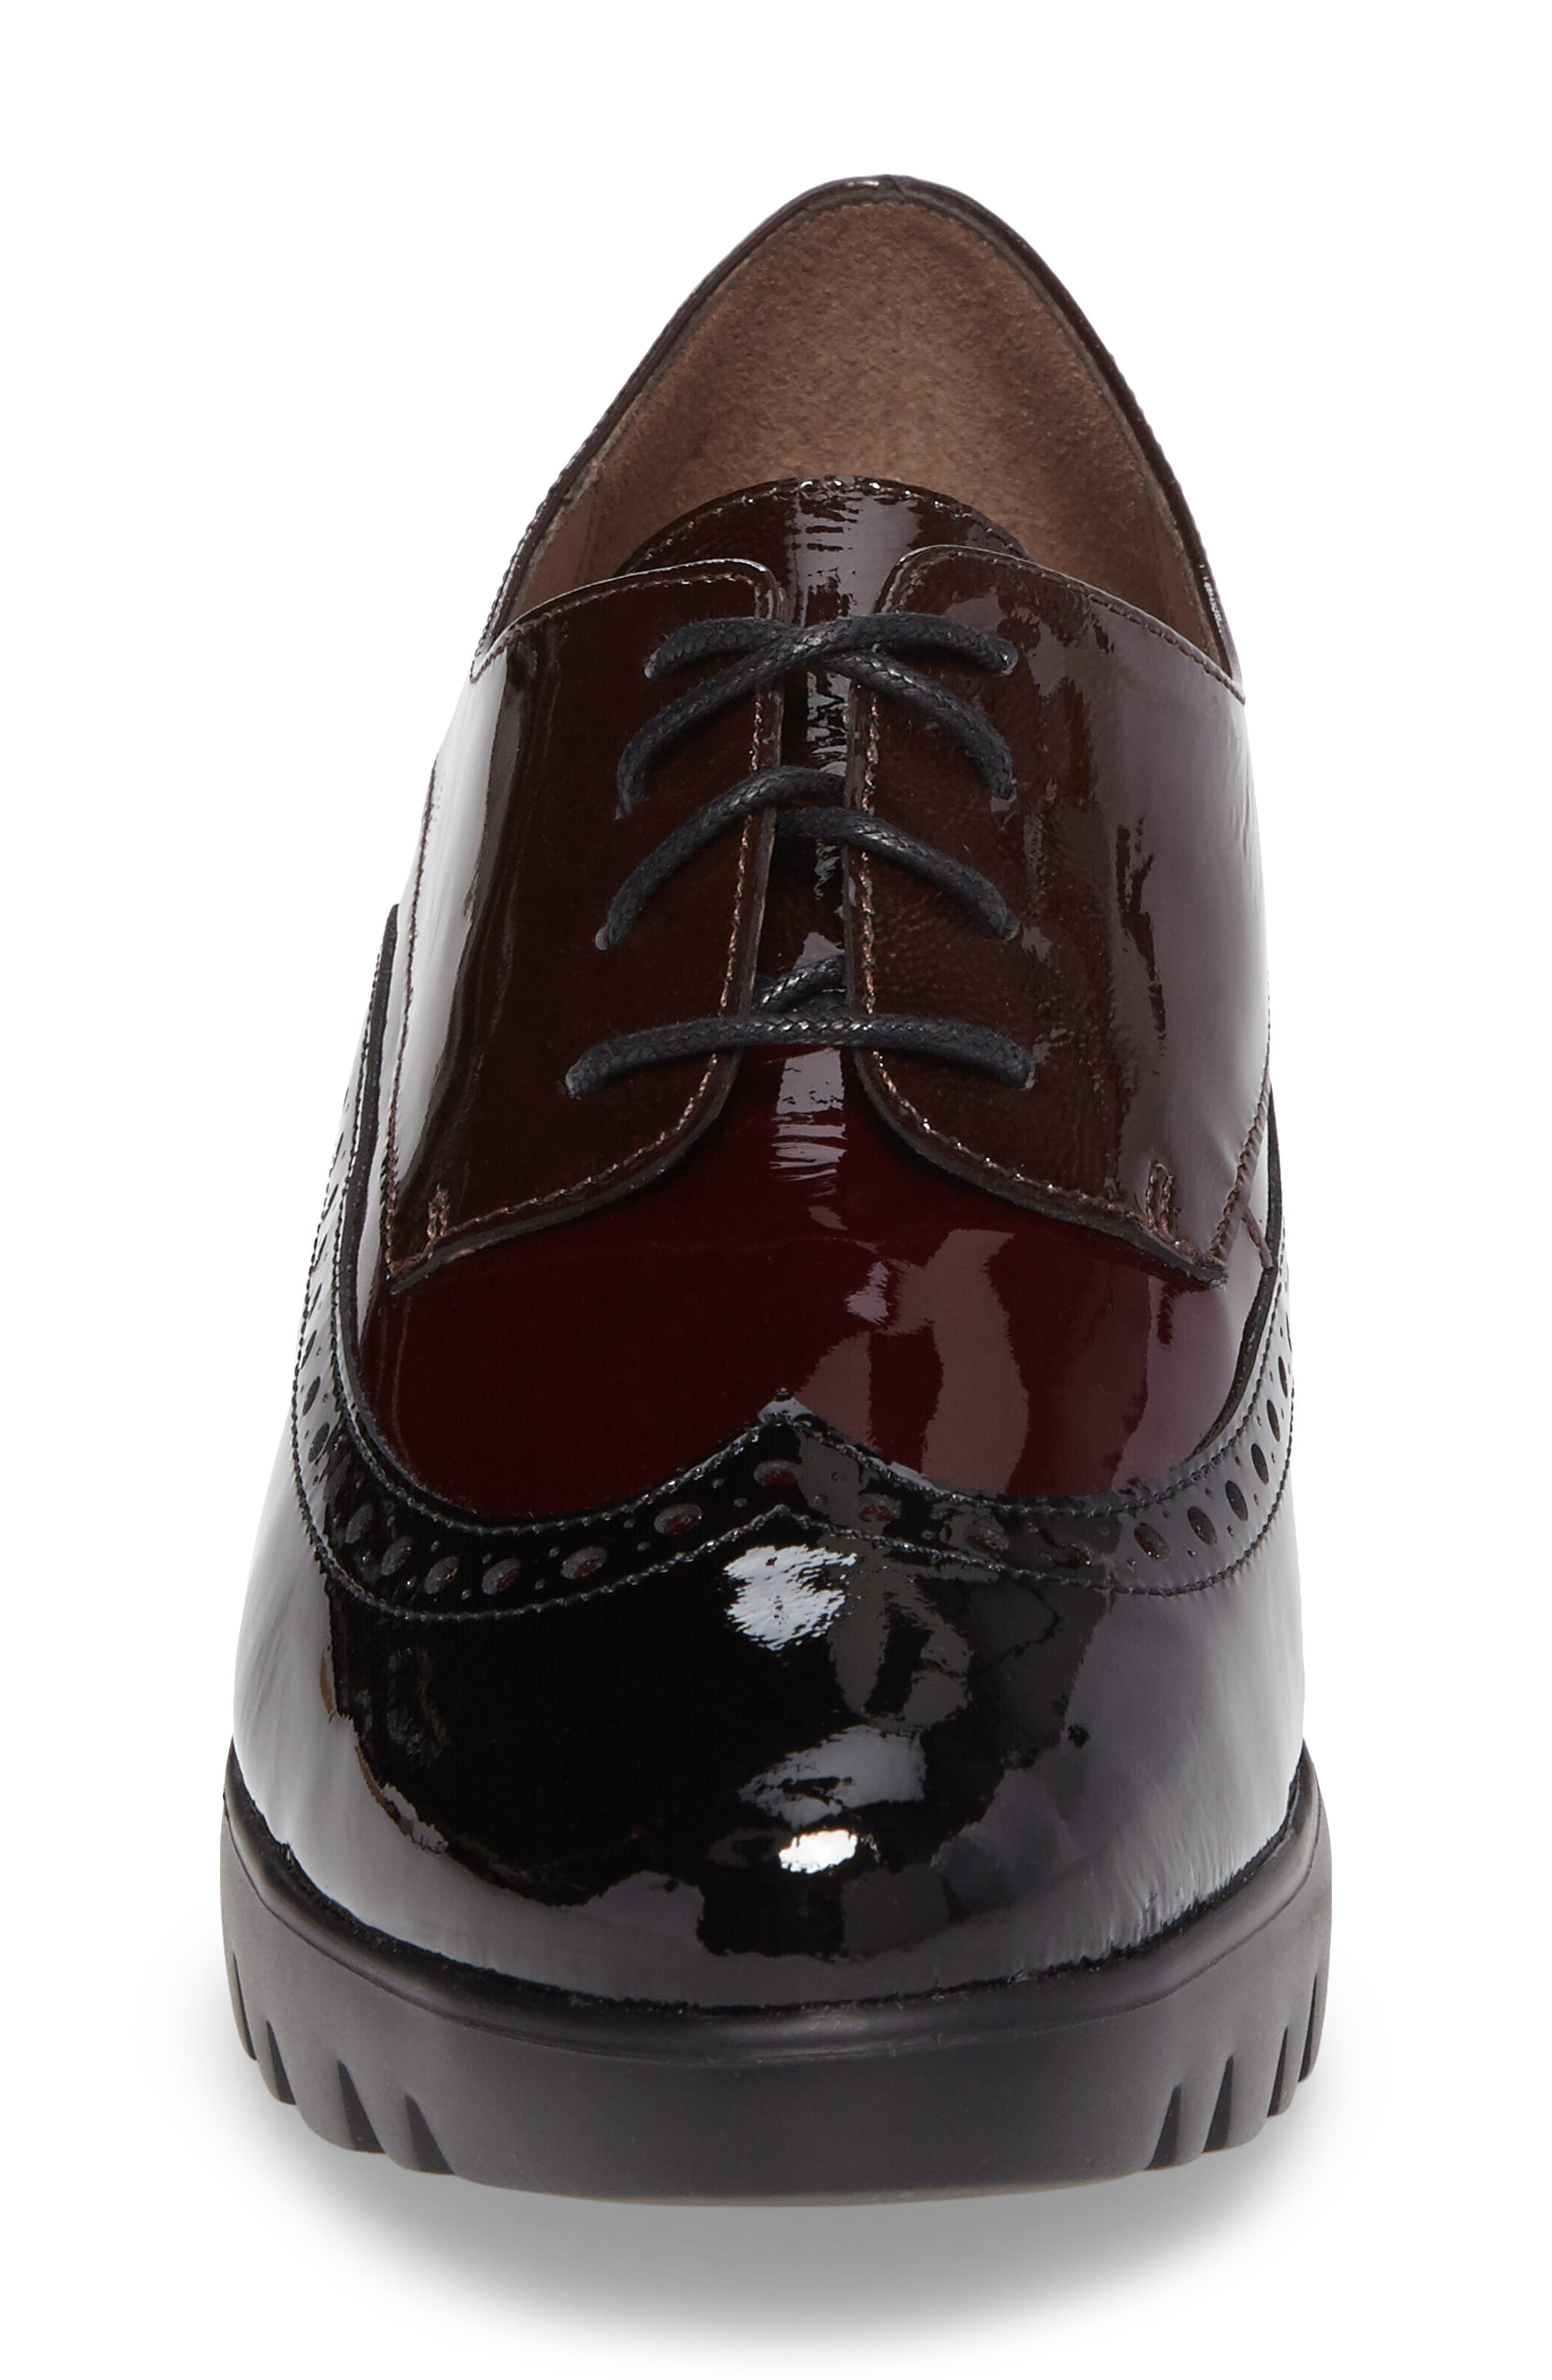 Wedge Wingtip Derby,                             Alternate thumbnail 4, color,                             Black/ Bordo Patent Leather